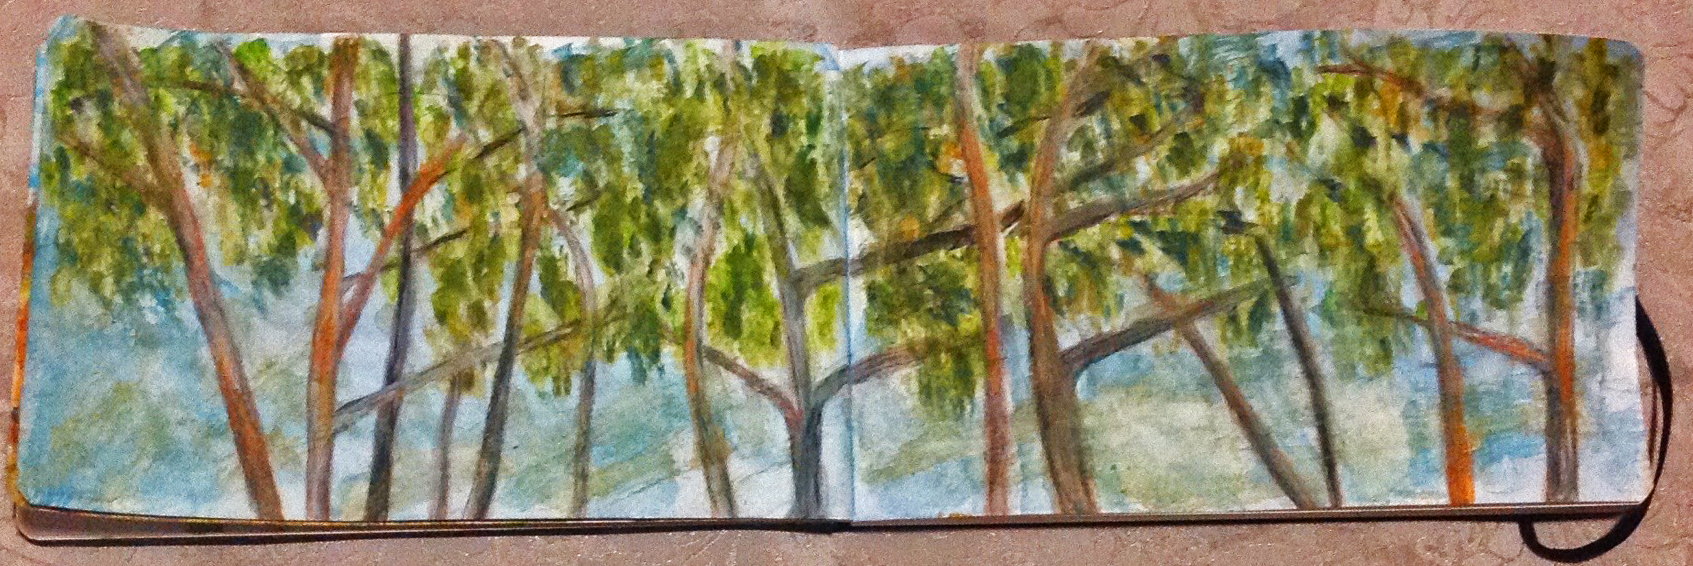 Double page sketch using Watercolour and mixed media from a recent stay in Clare Valley South Australia in a Landscape Moleskin I love using. I was sketching while relaxing on the balcony of our accommodation, the upper branches of the trees in front of me begging for their story to be recorded.